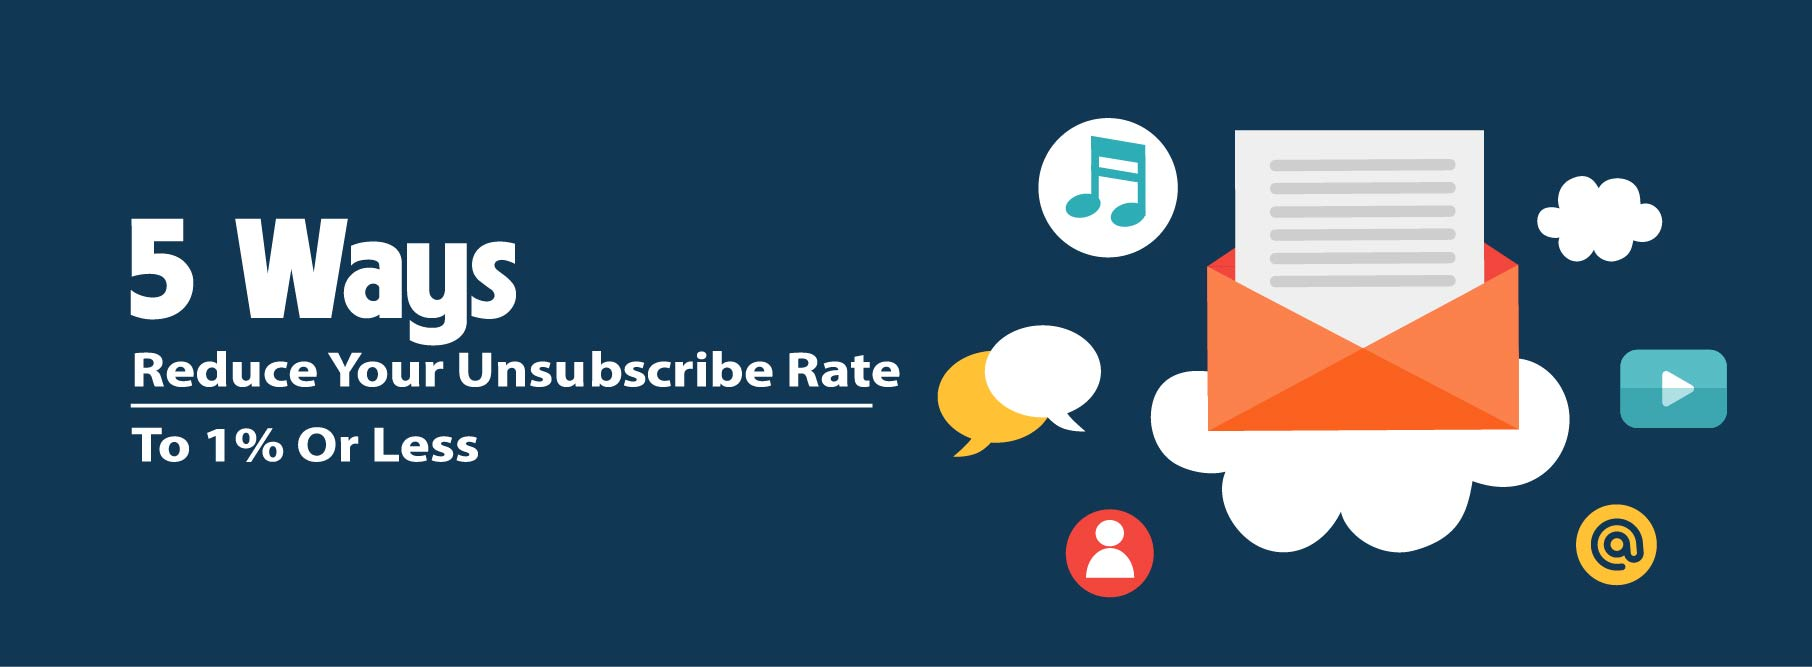 reduce unsubscribe rate